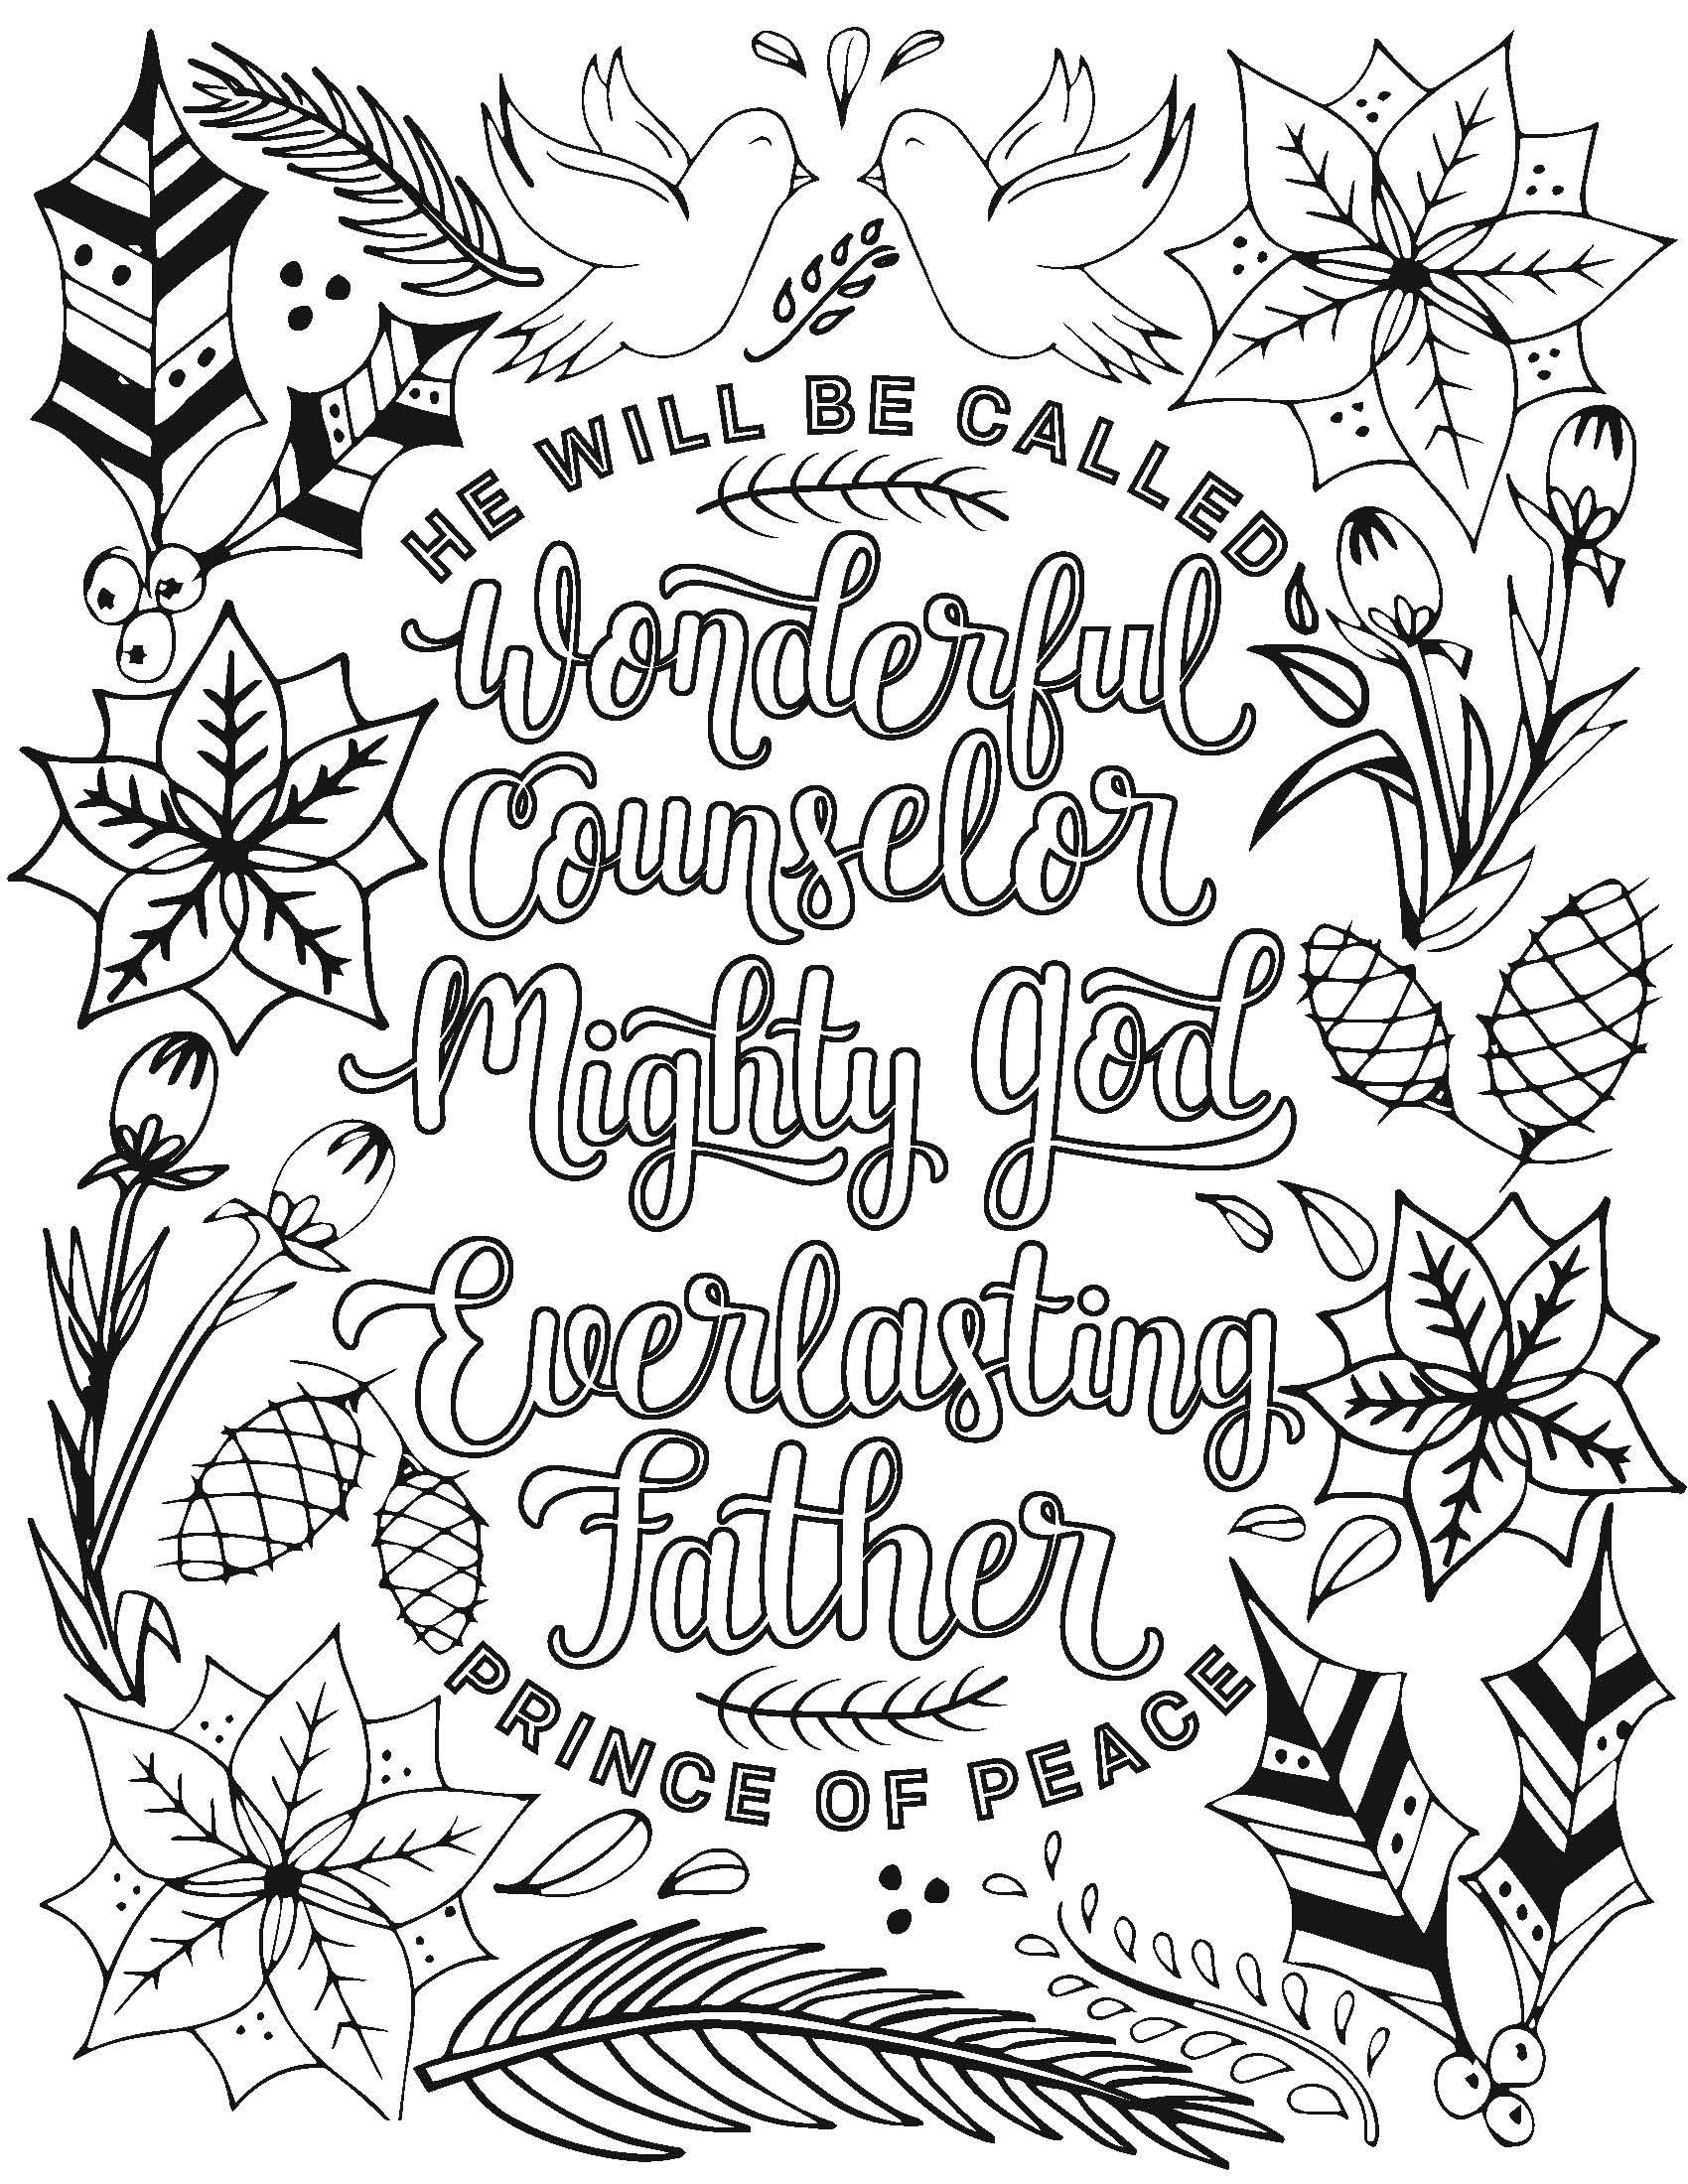 pin by amy shaffer on bible printables | christmas coloring pages